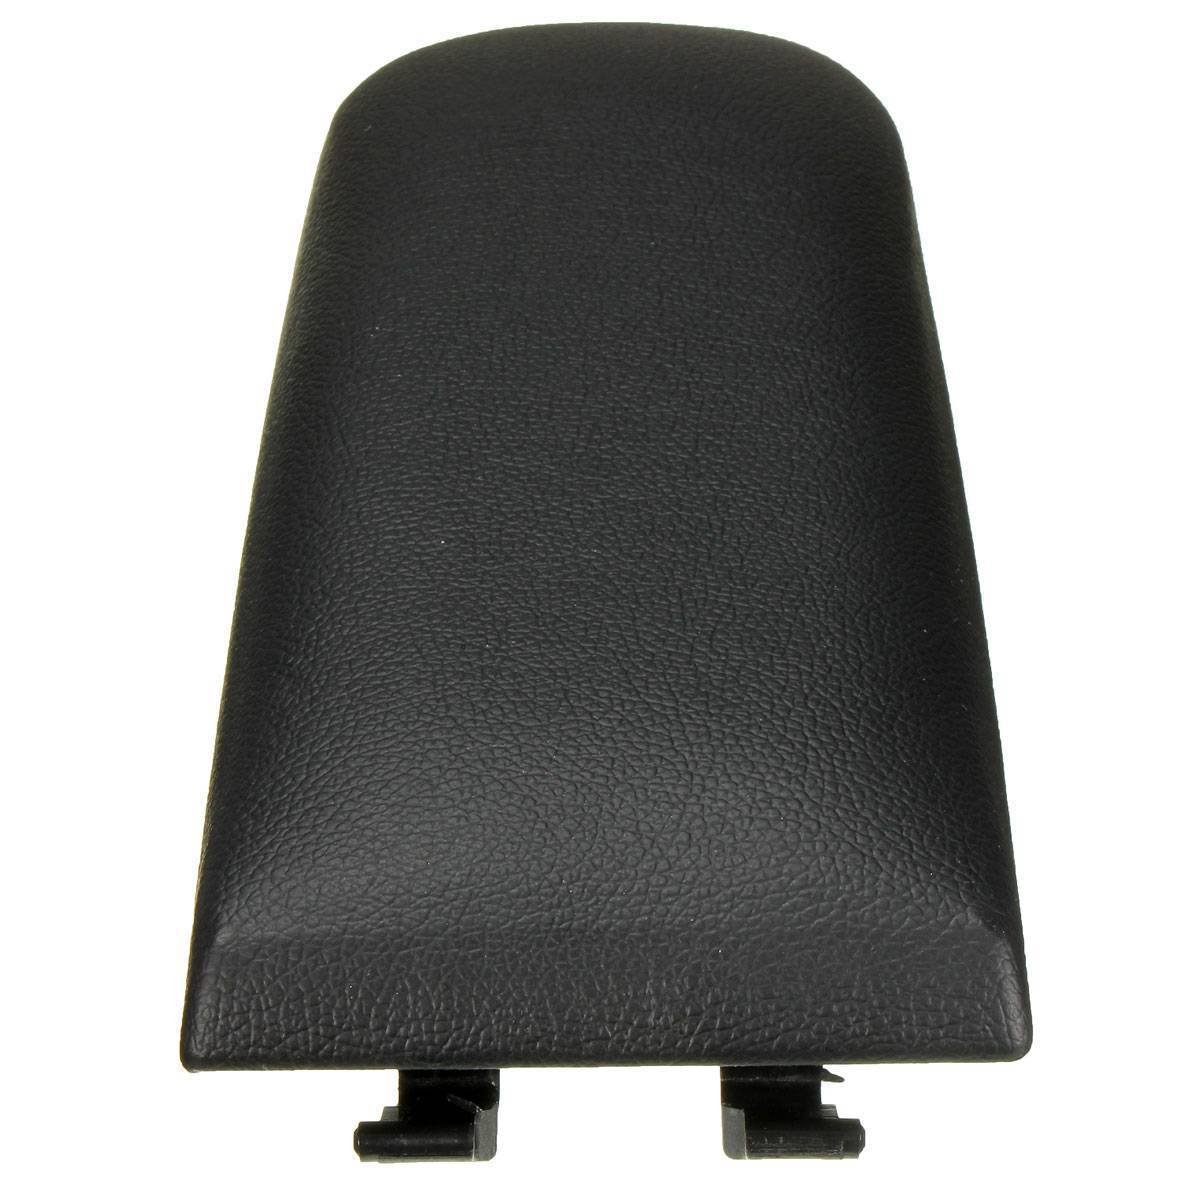 Center Console Armrest Lid For VW Jetta Golf MK4 99-04